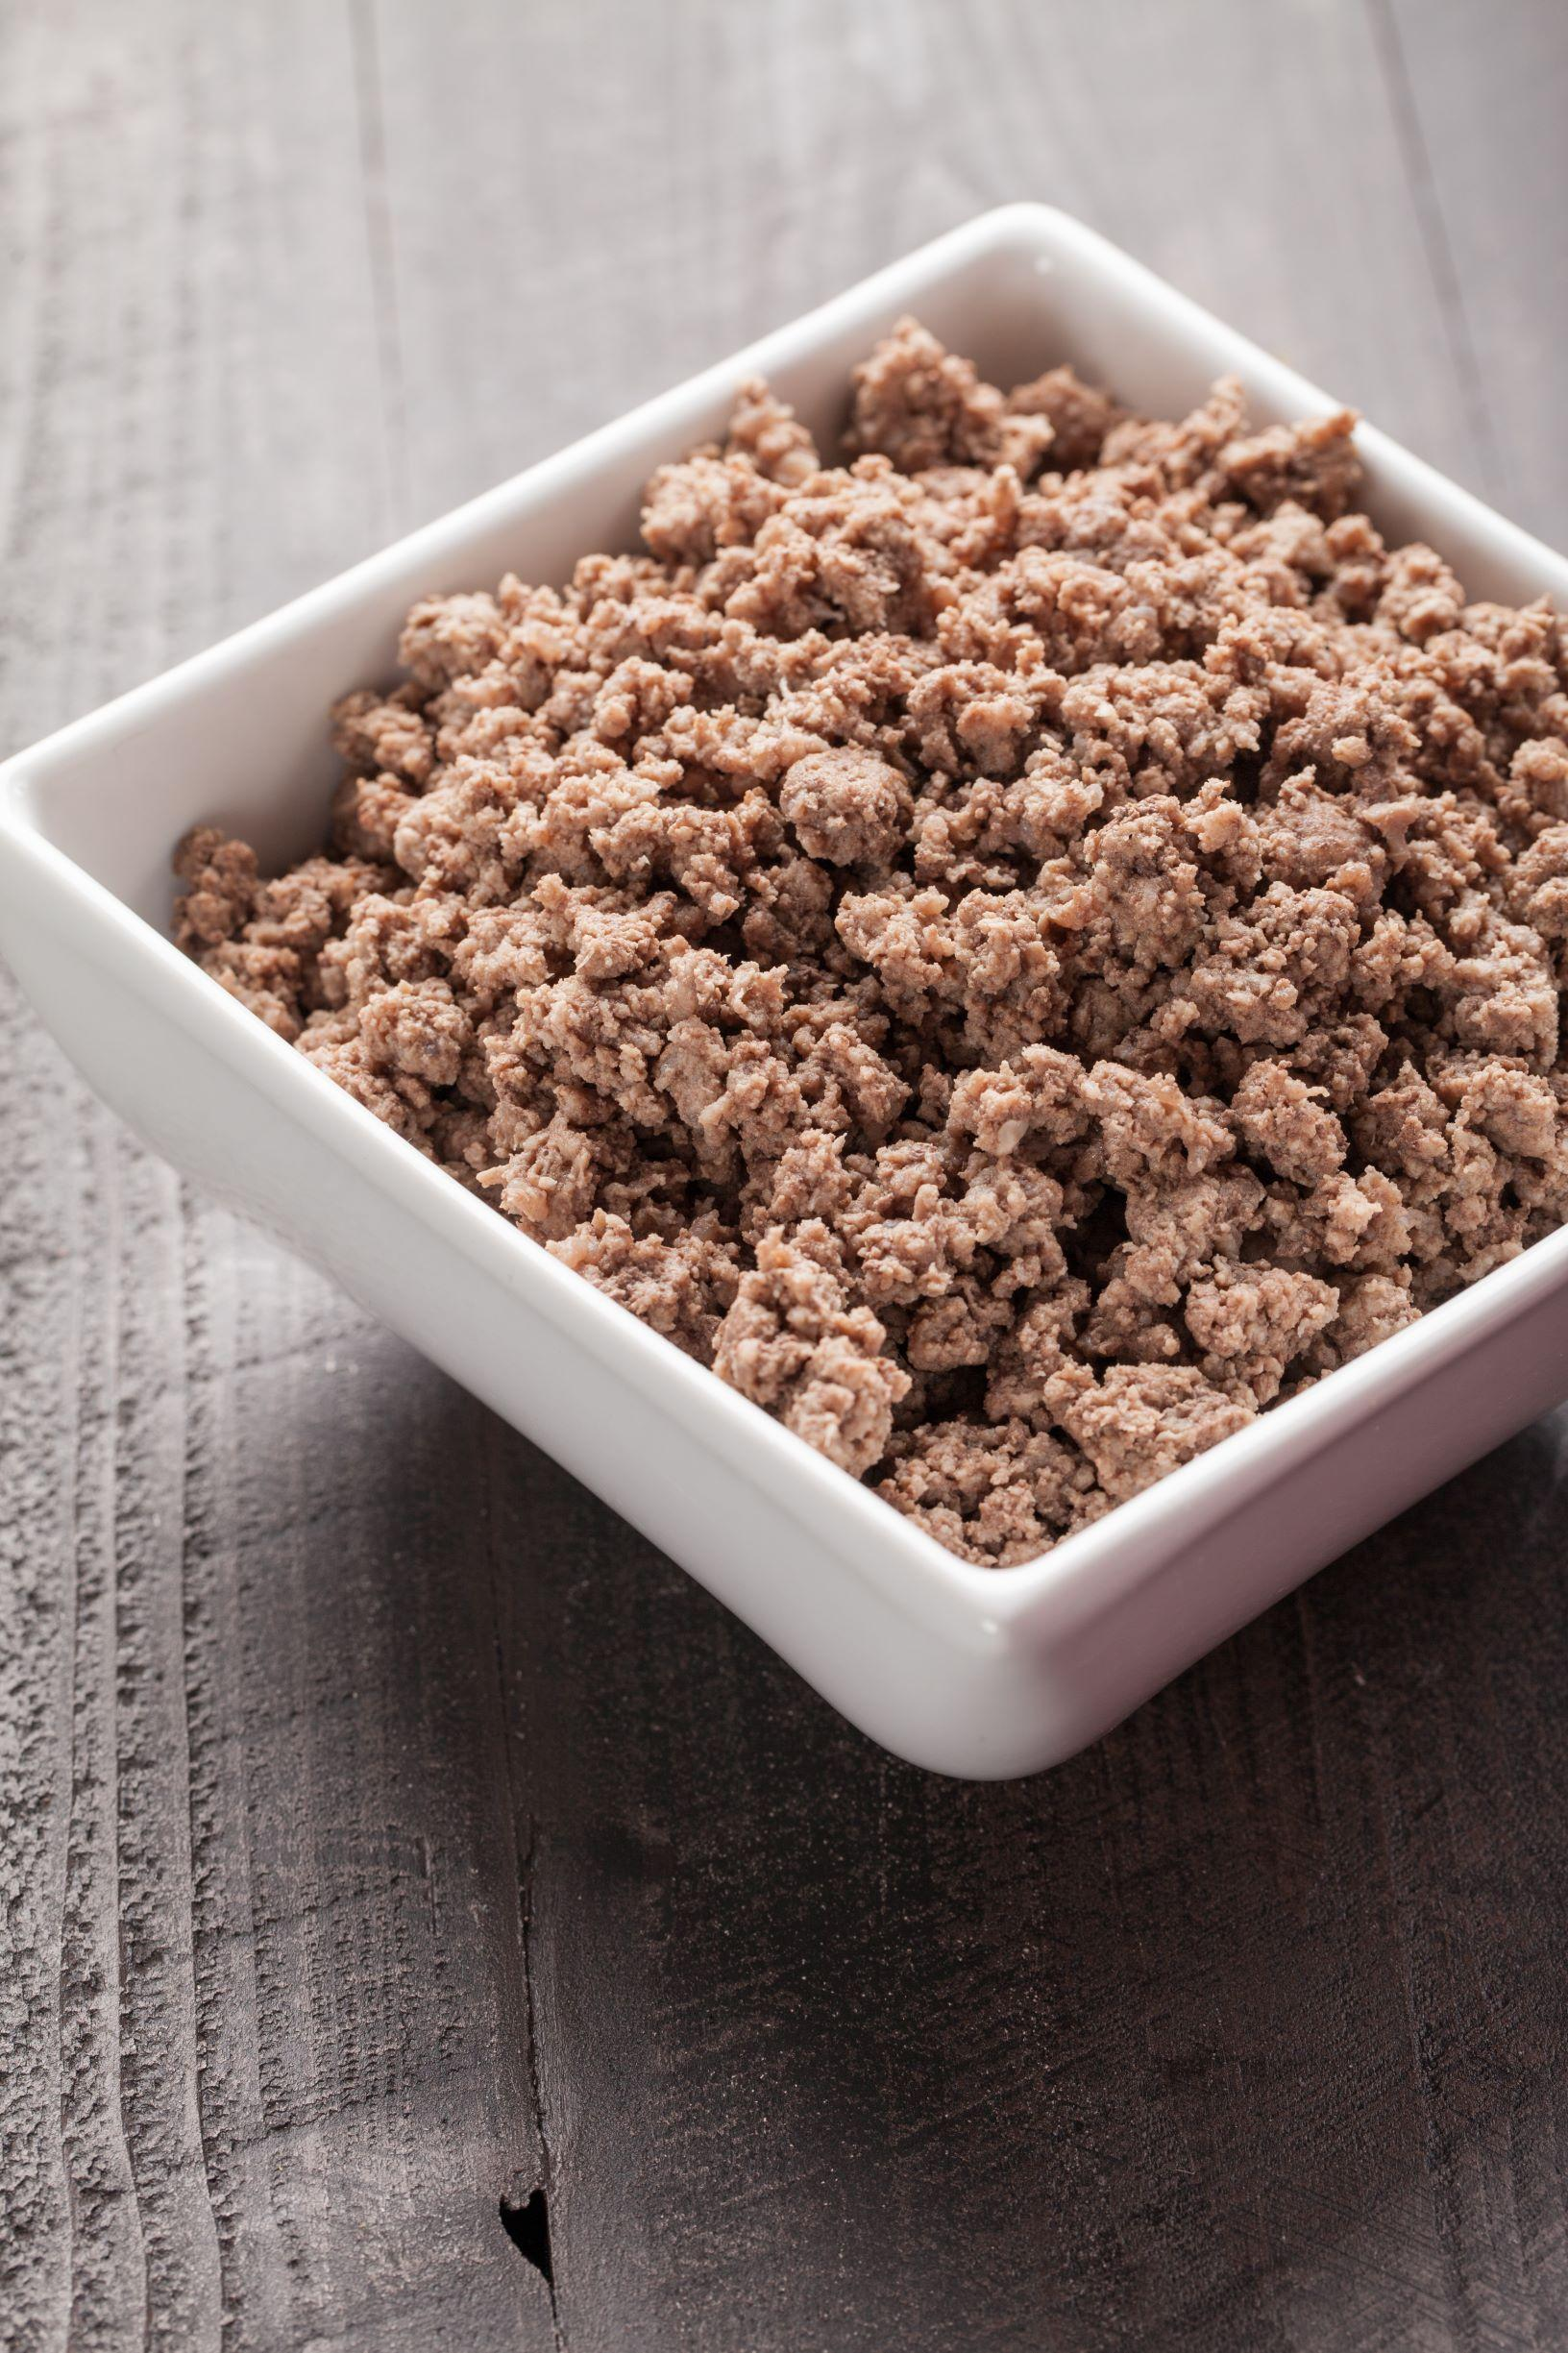 Thaw Ground Beef Safely Food Hero